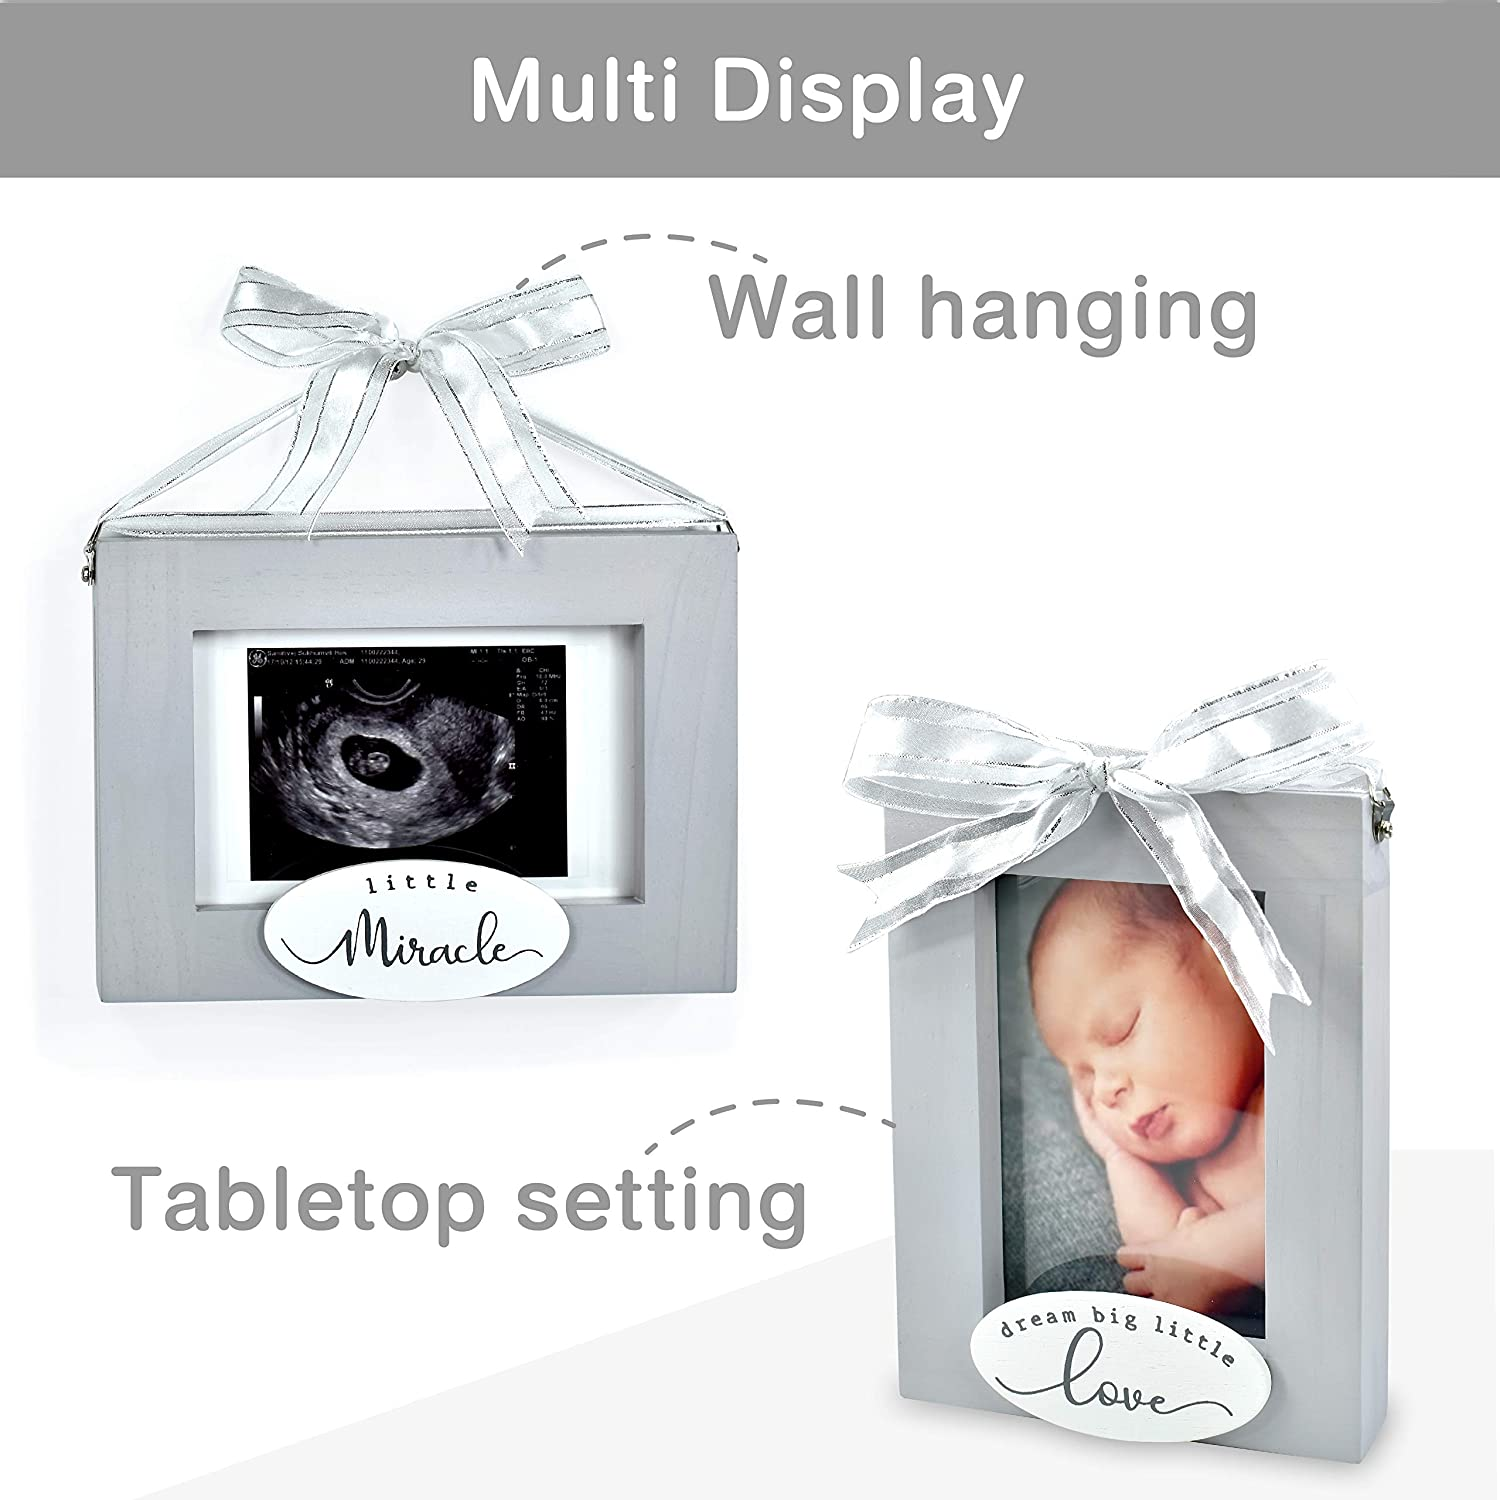 "I/'m Solid Wood Sonogram Pregnancy Baby Ultrasound 2 Sided Photo Frame Gray Great for Expecting New Parents Baby Shower Gift Keepsake /& Nursery D/écor /""Little Miracle//Dream Big Little Love"